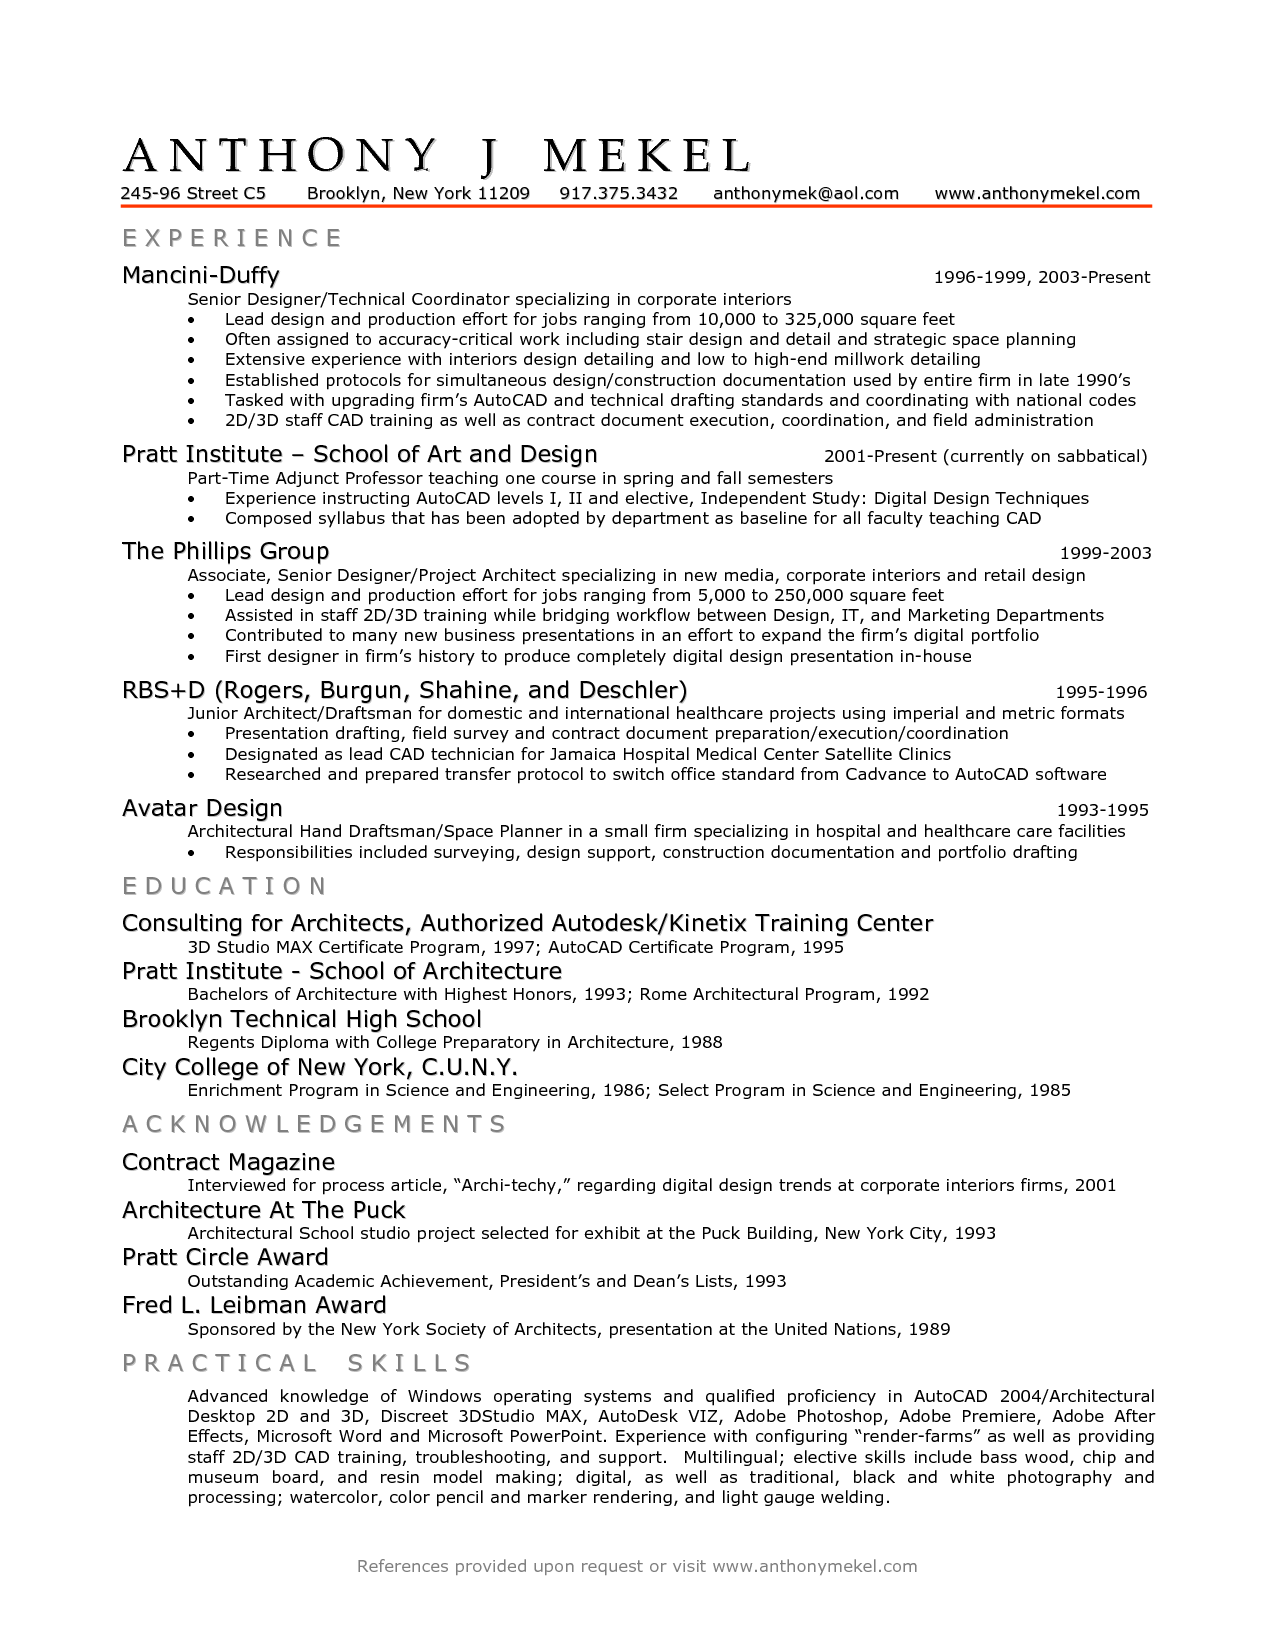 Resume For College Graduate Network Field Engineer Sample Resume Senior Mechanical Recent